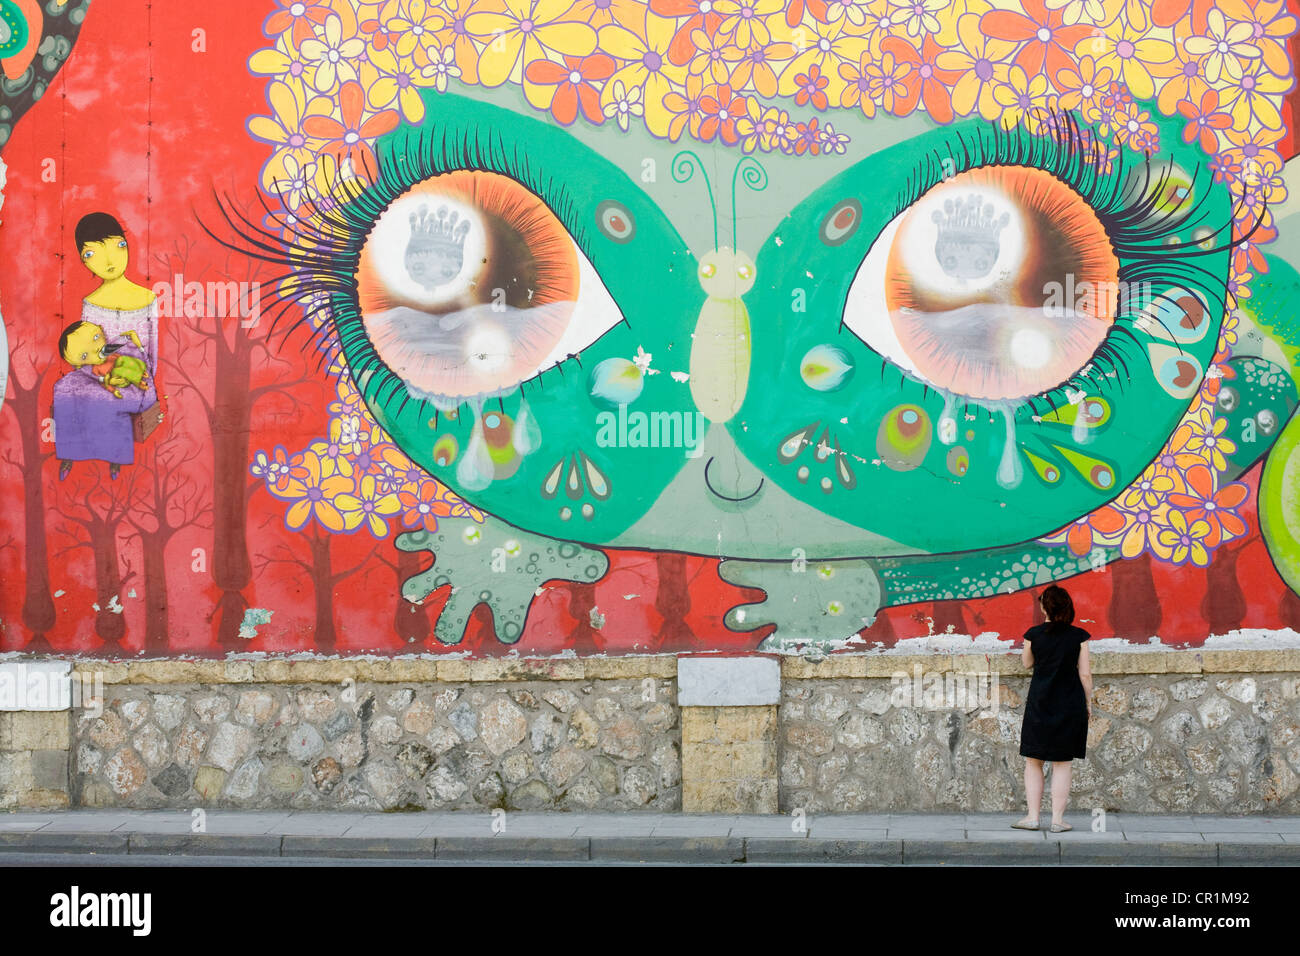 Greece, Attica, Athens, Pireos Street, tags - Stock Image